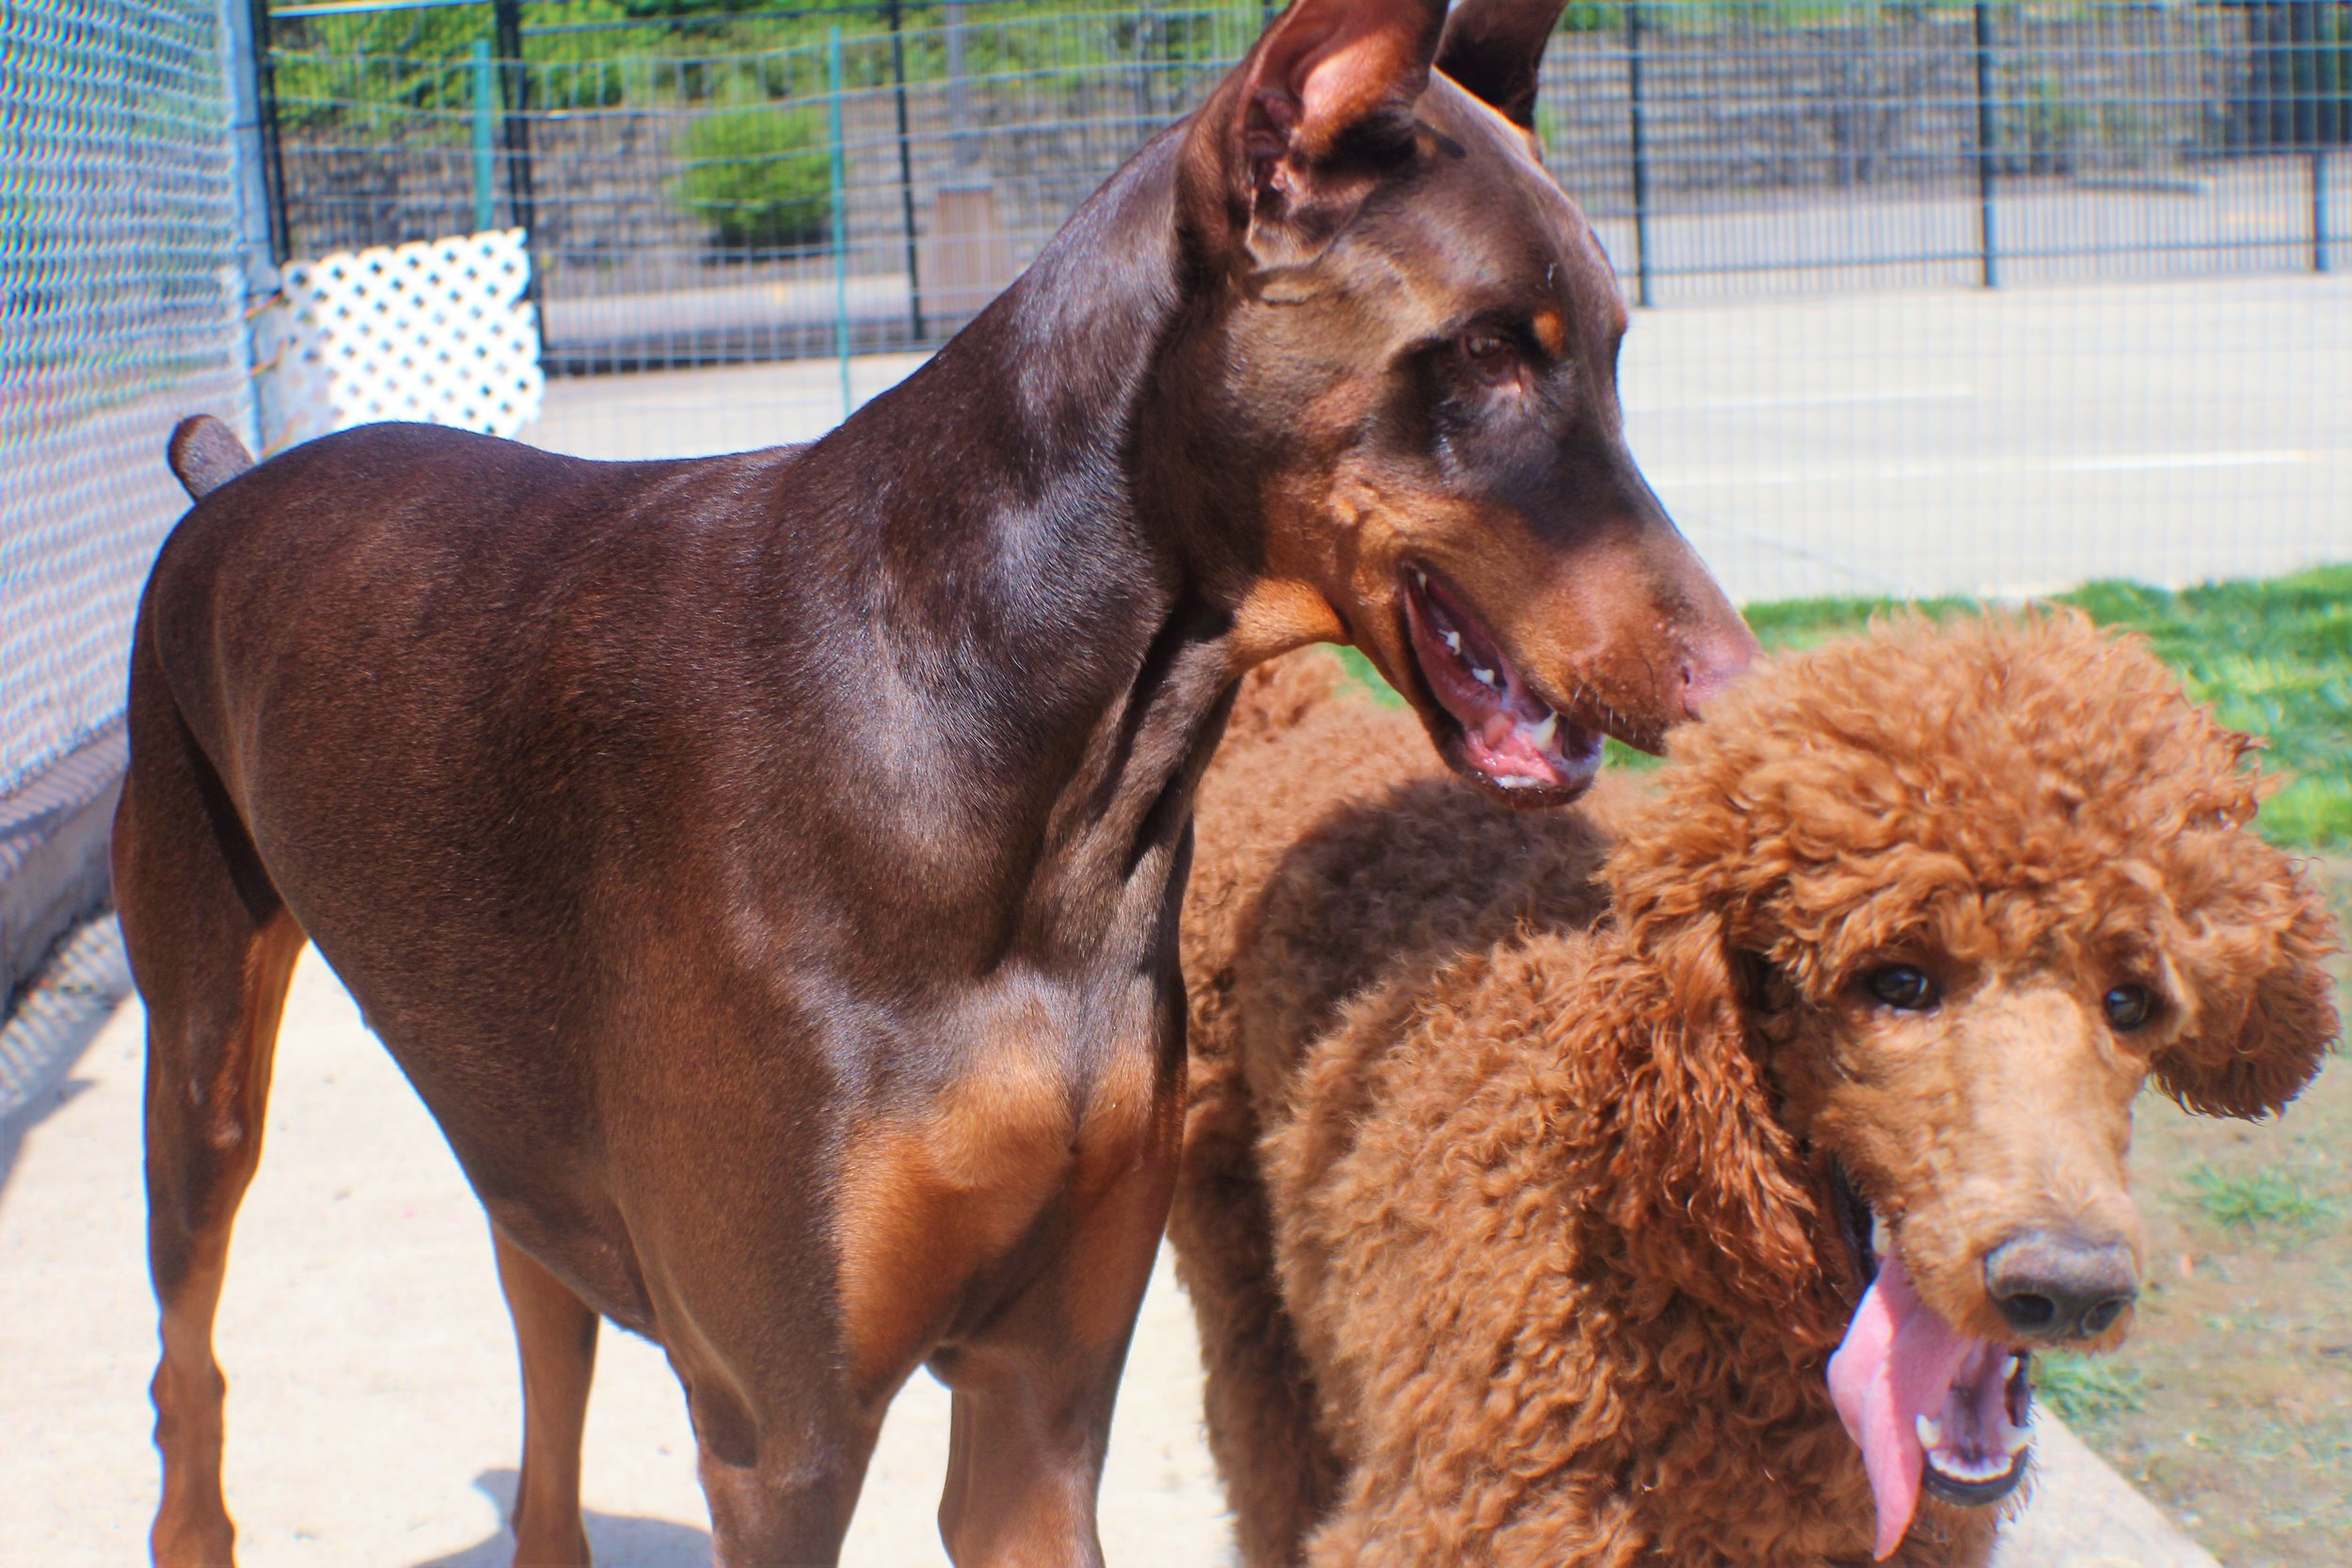 Archer & Wrigley a dog love story that has stood the test of time. Or just a couple of days of boarding. Love knows no bounds!